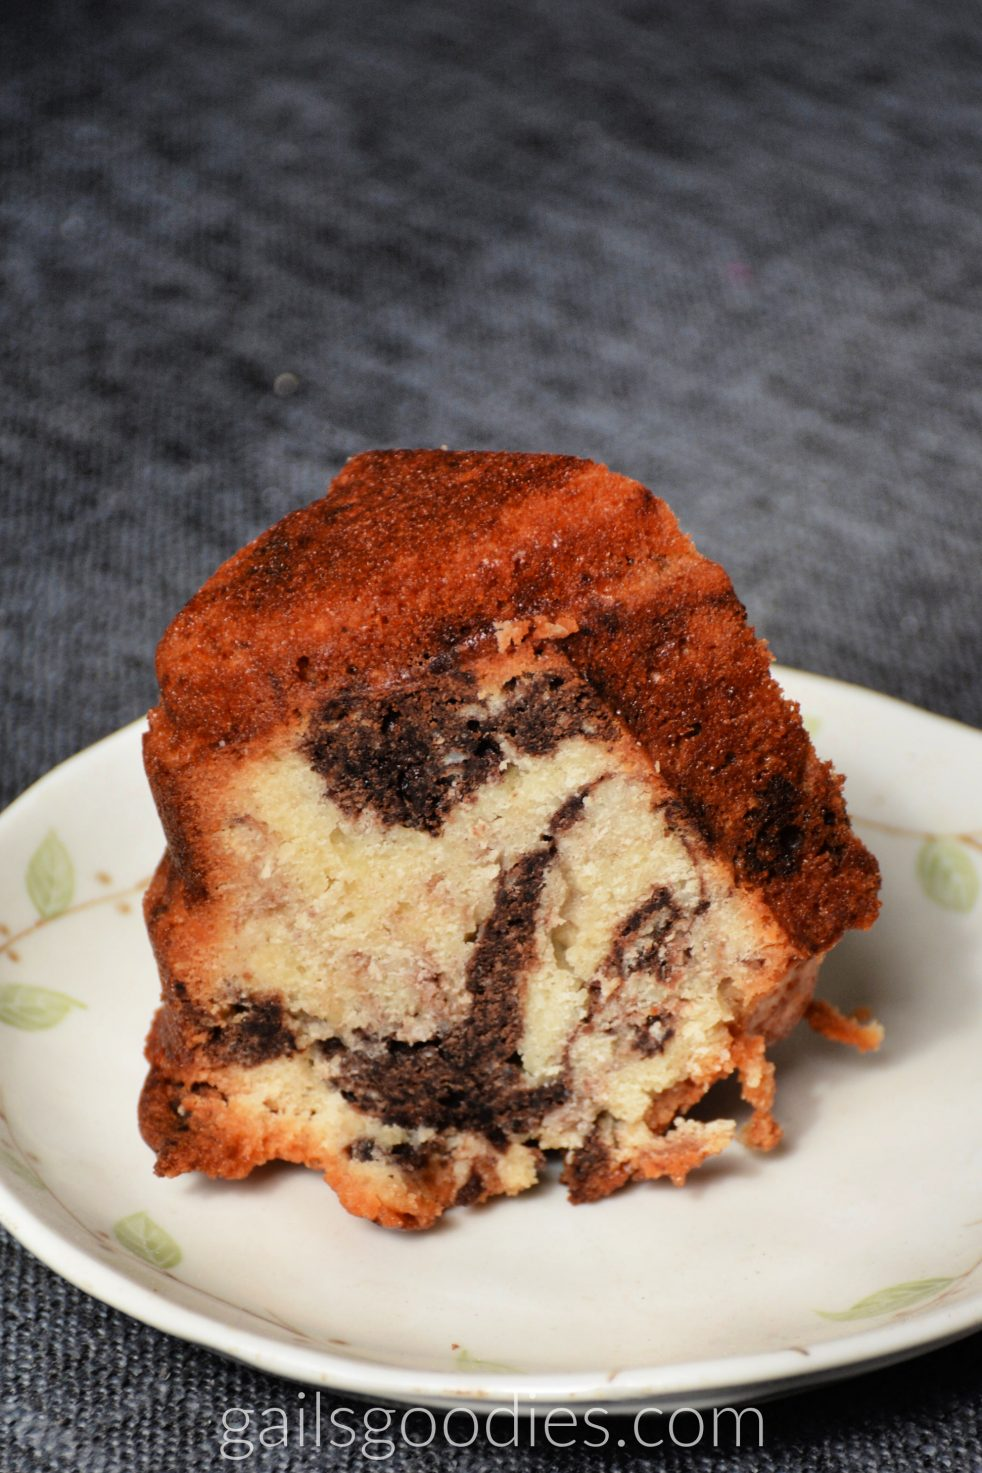 This is a slice of coconut marble bundt cake with no ganache. The cut side is facing the front of the photo. There are several chocolate swirls at the bottom and top of the slice.